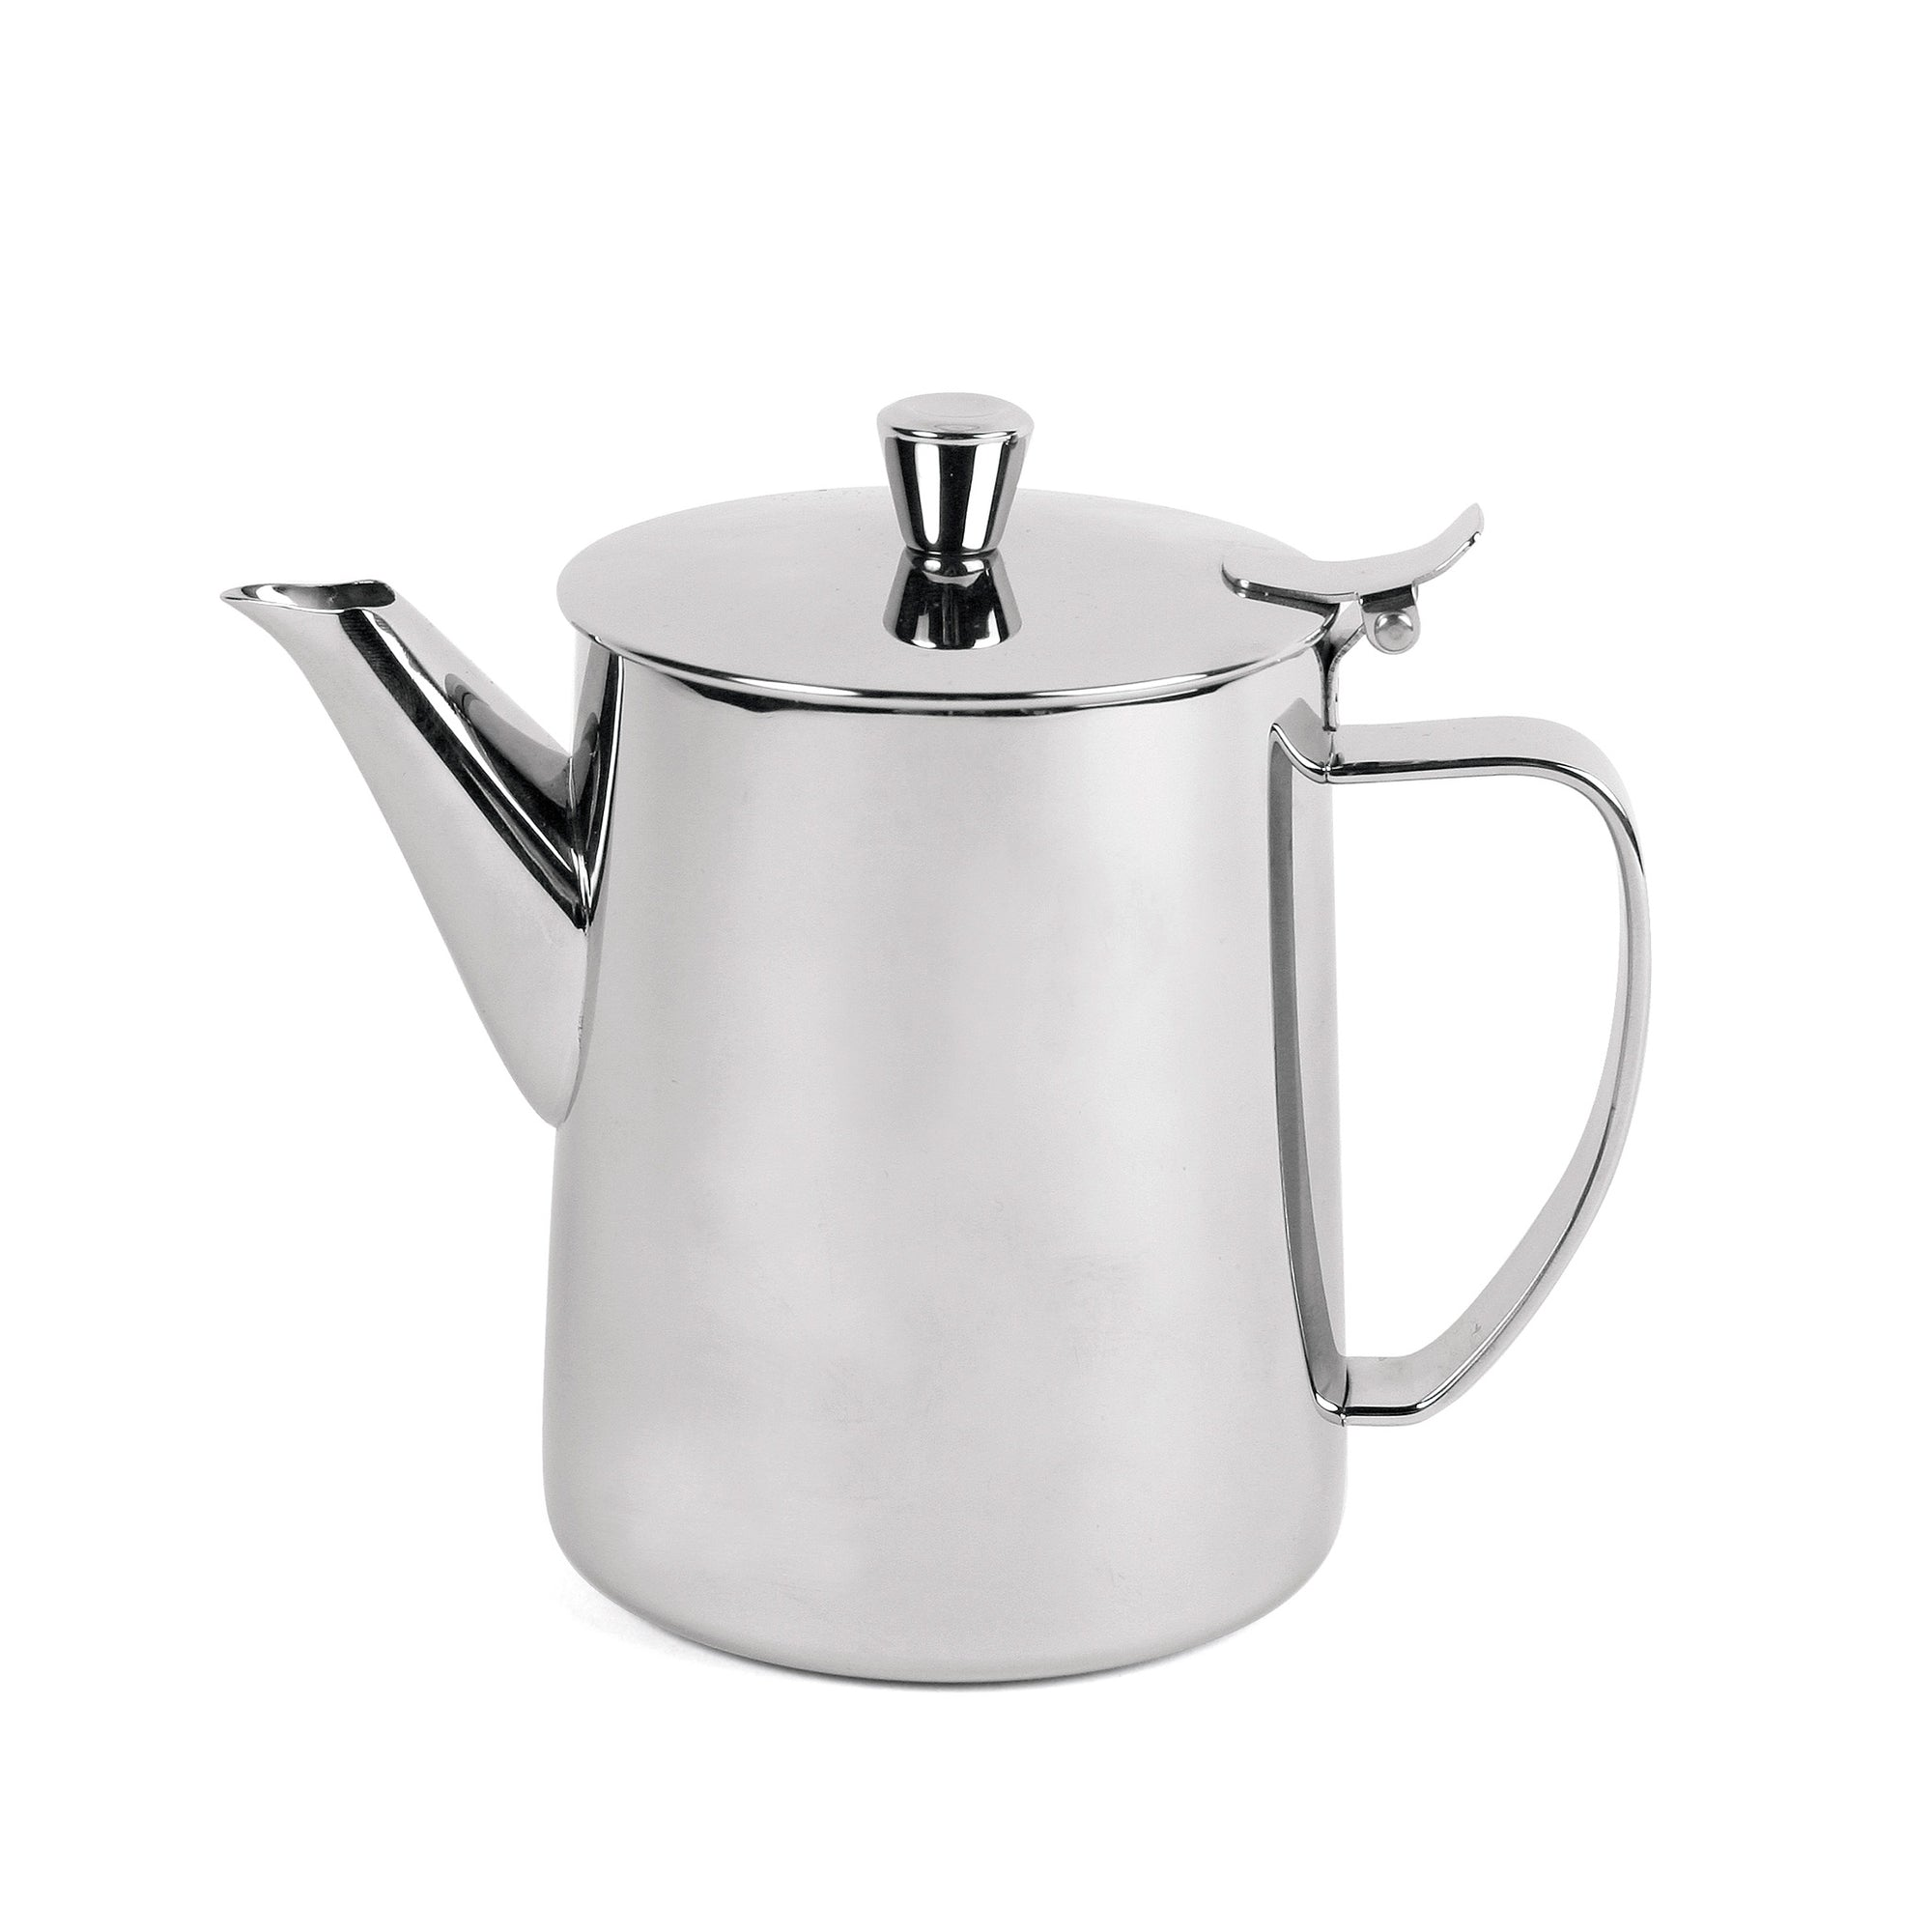 Classic Stainless Coffee Server 1L - Merx - Espresso Gear